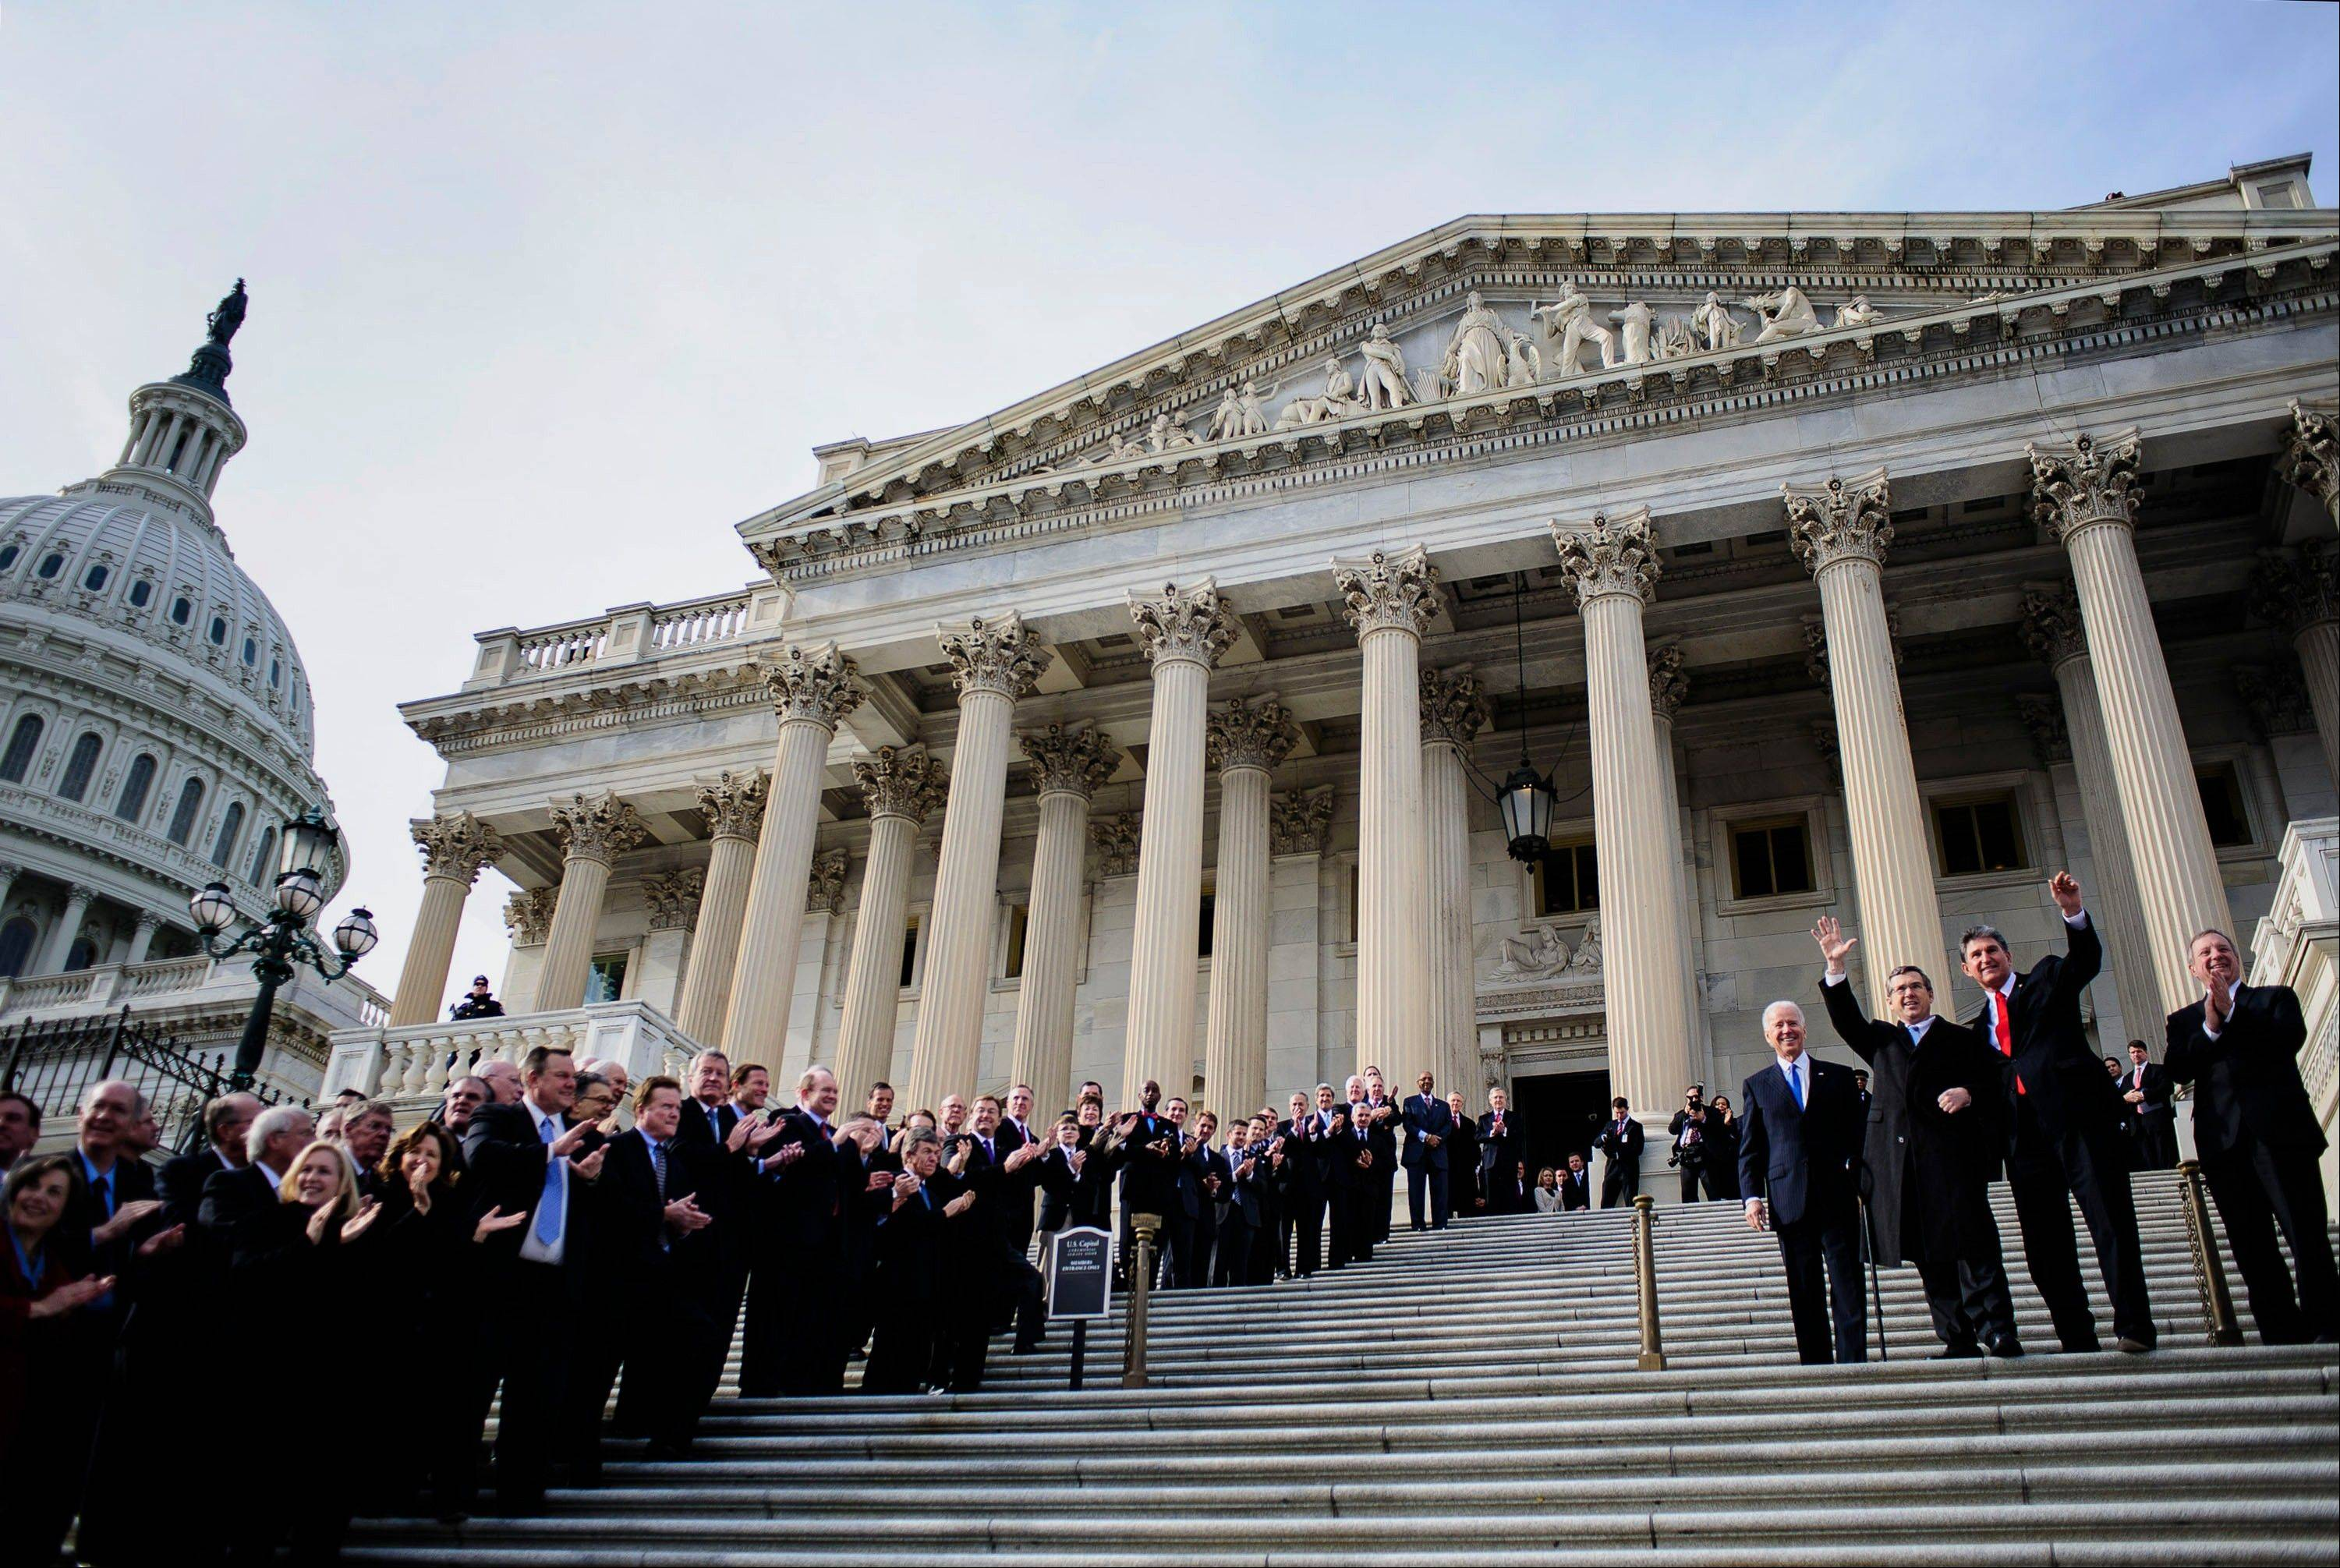 U.S. Sen. Mark Kirk, a Highland Park Republican, and Democratic Sen. Joe Manchin, from West Virginia, second right, wave from the steps of the U.S. Capitol when Kirk returned for the first time Jan. 3 since he suffered a 2012 stroke